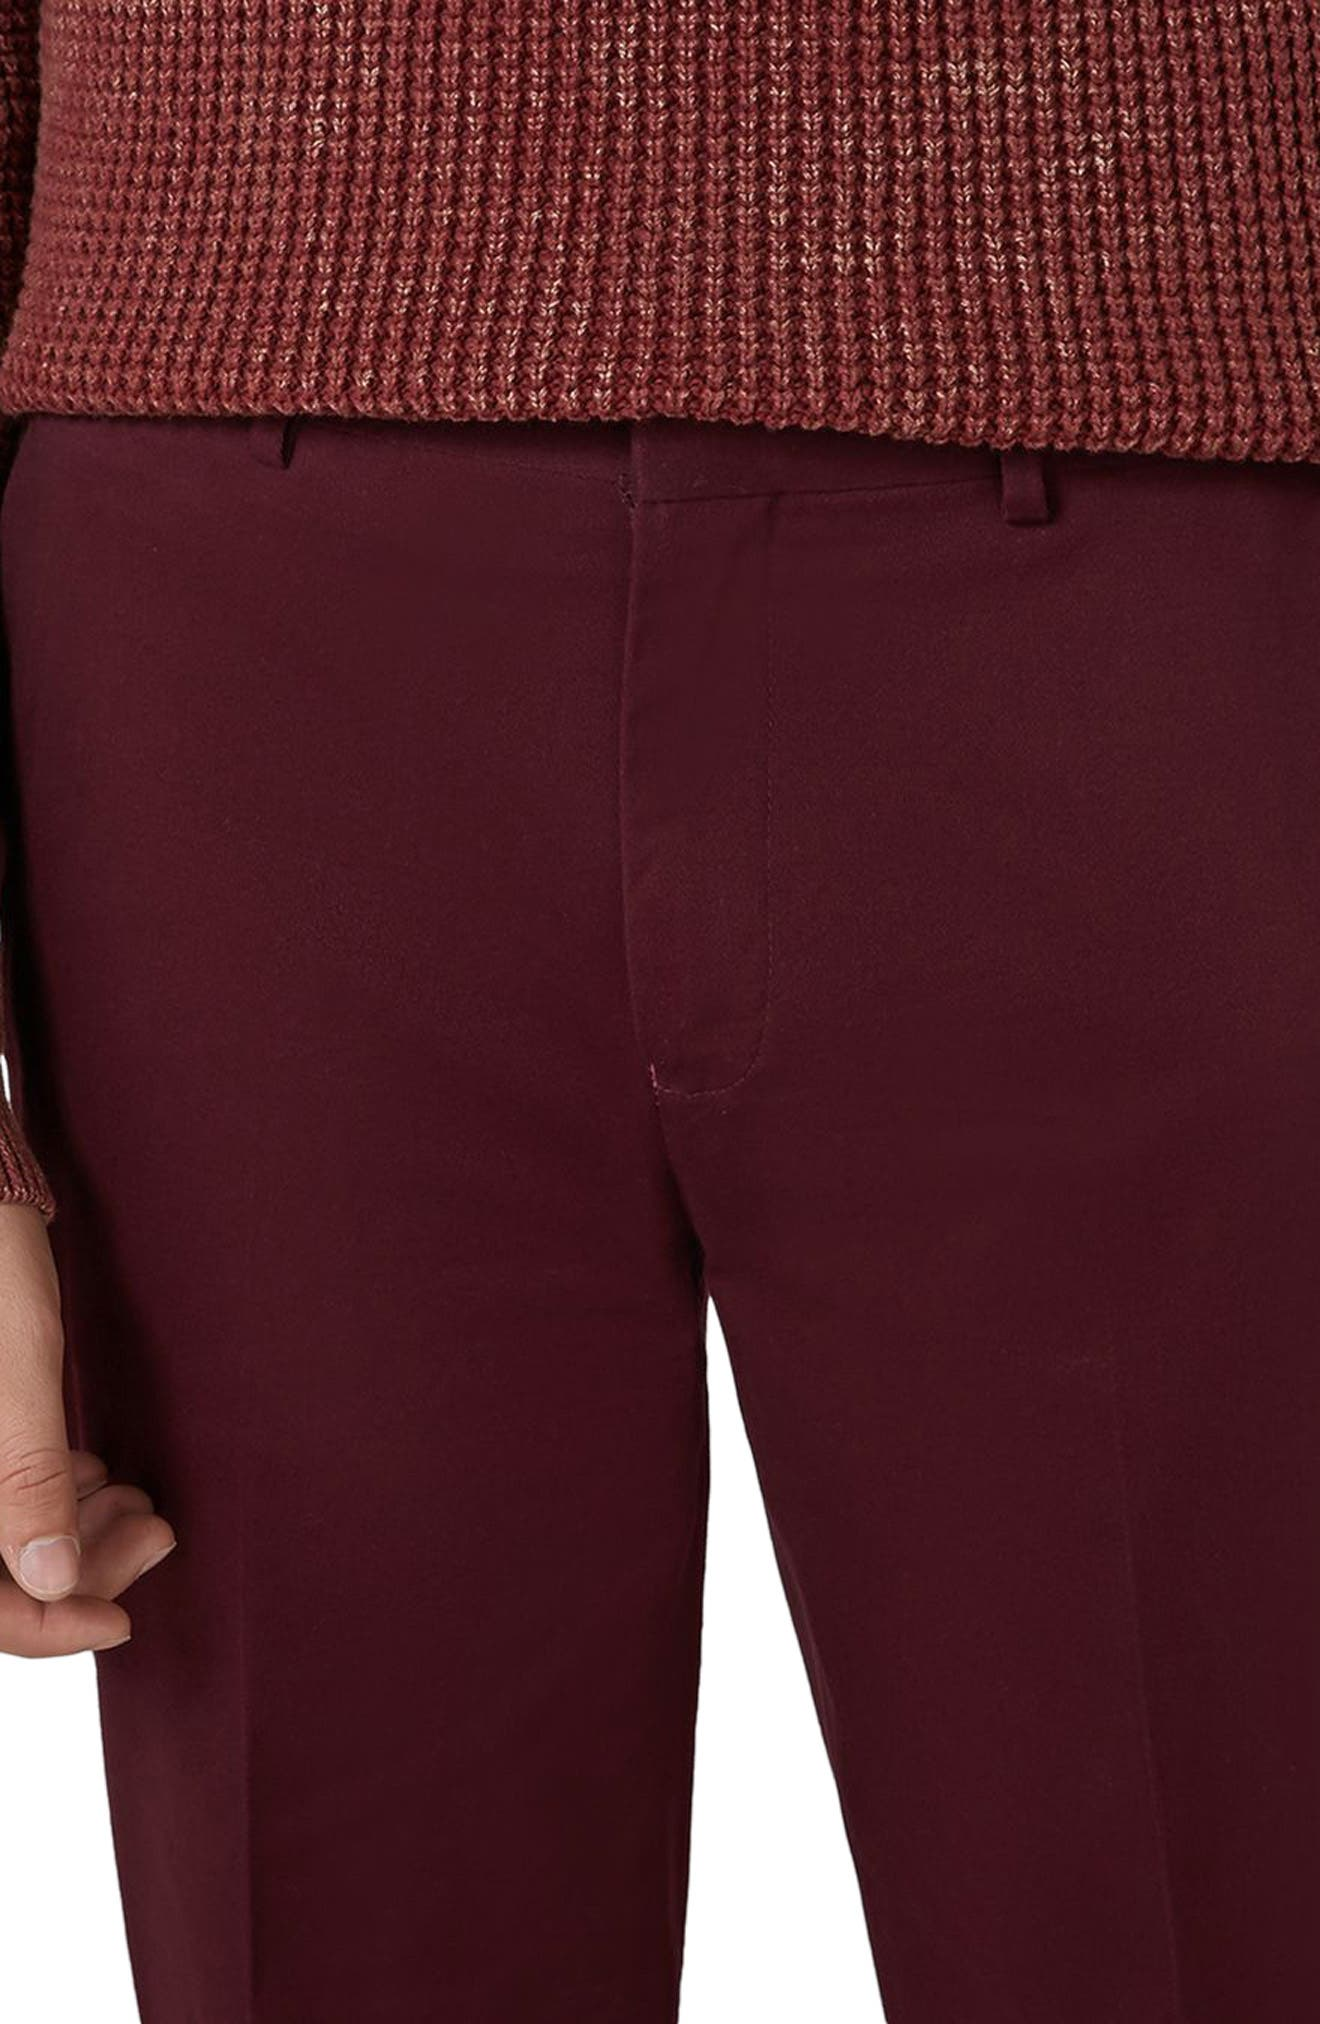 Twill Tapered Trousers,                             Alternate thumbnail 6, color,